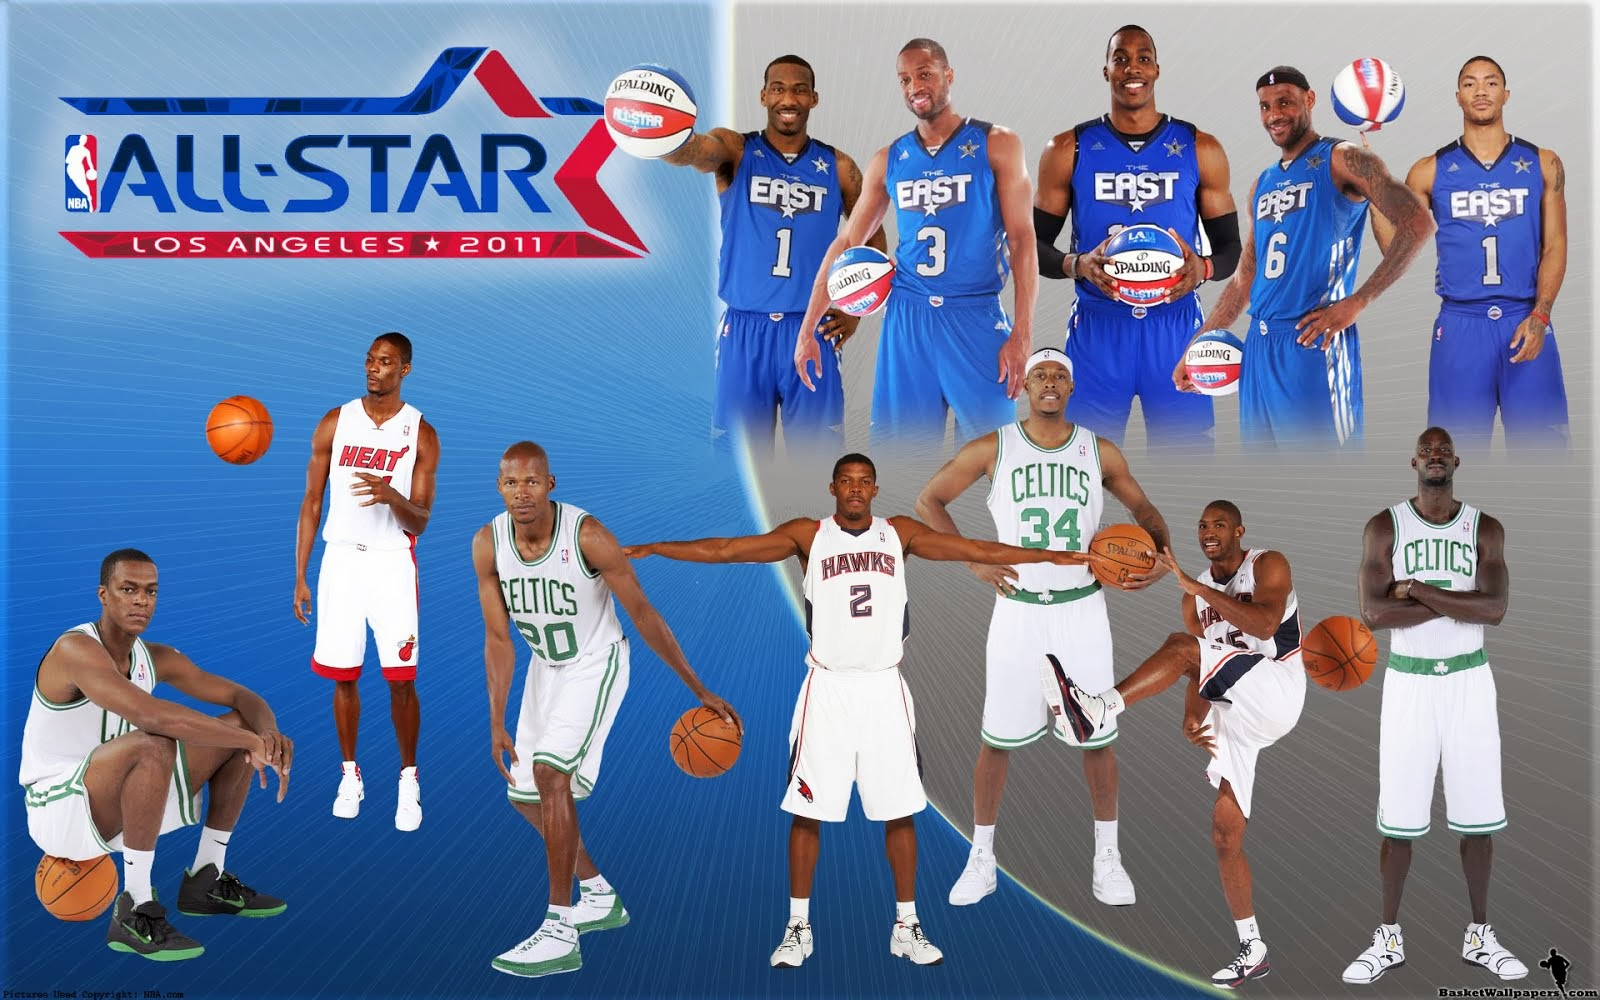 basketball stars picture: Nba All Star Basketball Wallpapers